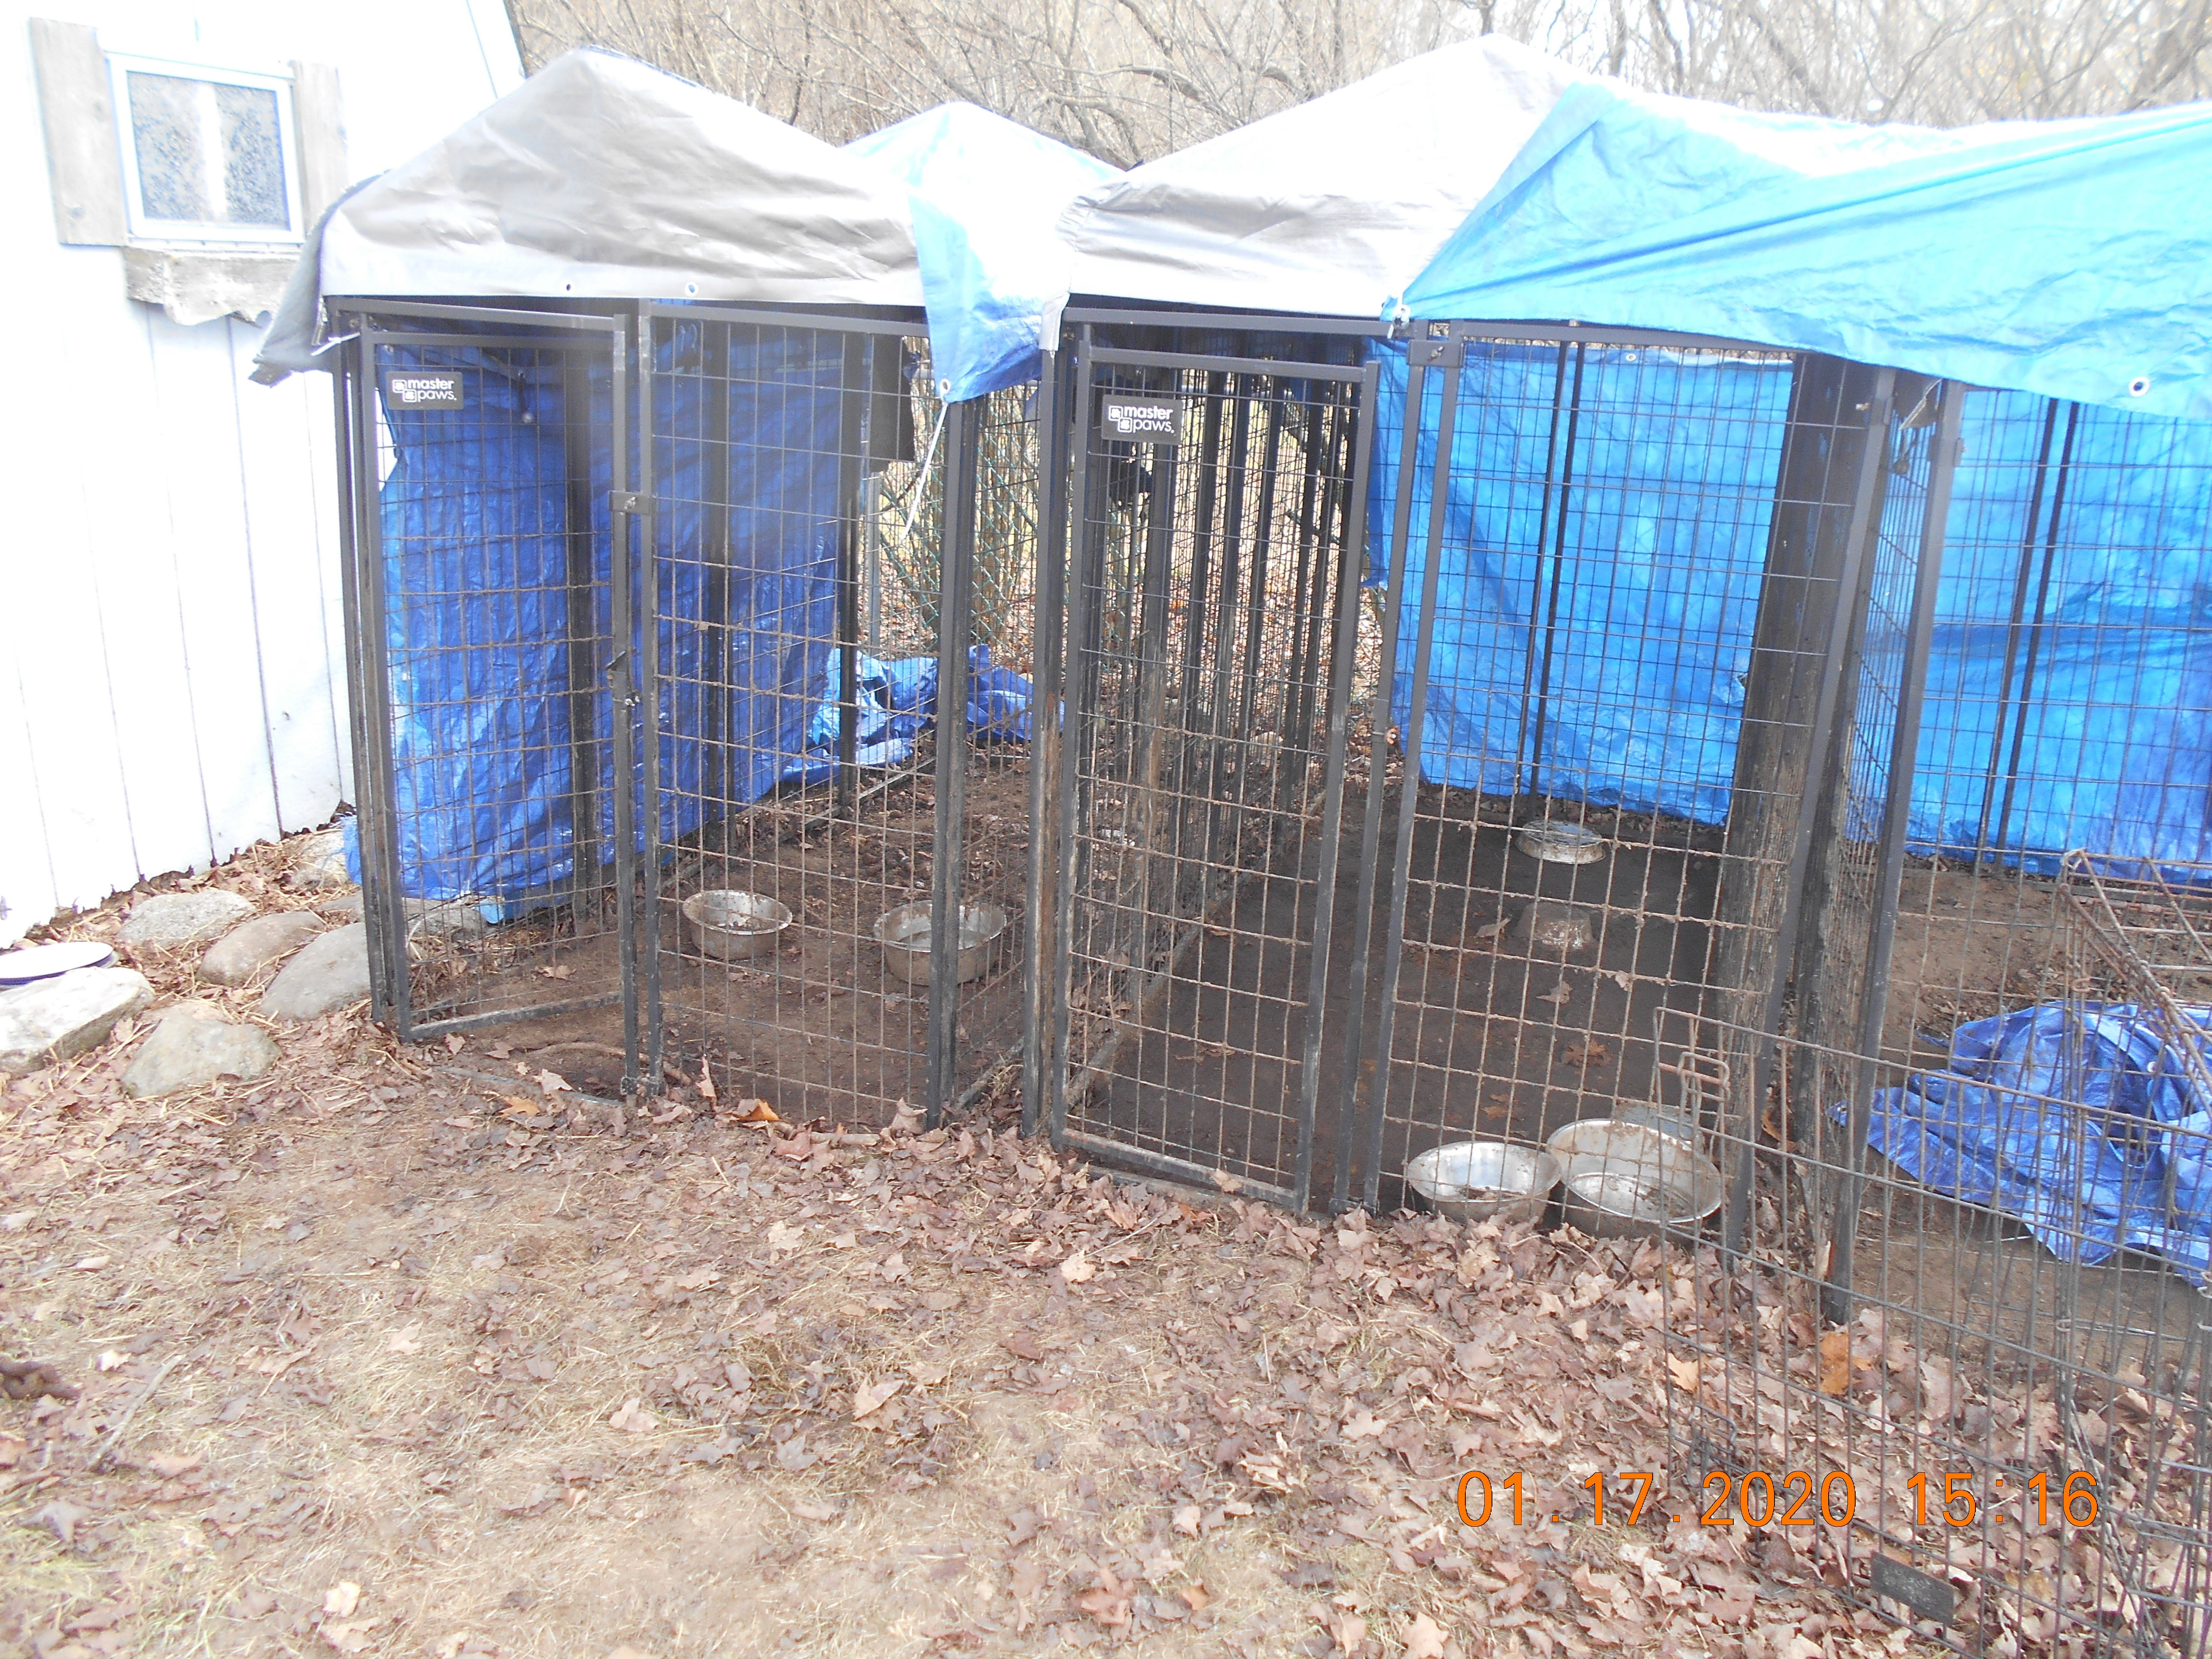 SPCA Executive Director Katie Timber said the dogs were left outside in the cold with no food or water for hours on end. (WWMT/ Courtesy of SPCA Southwest Michigan)